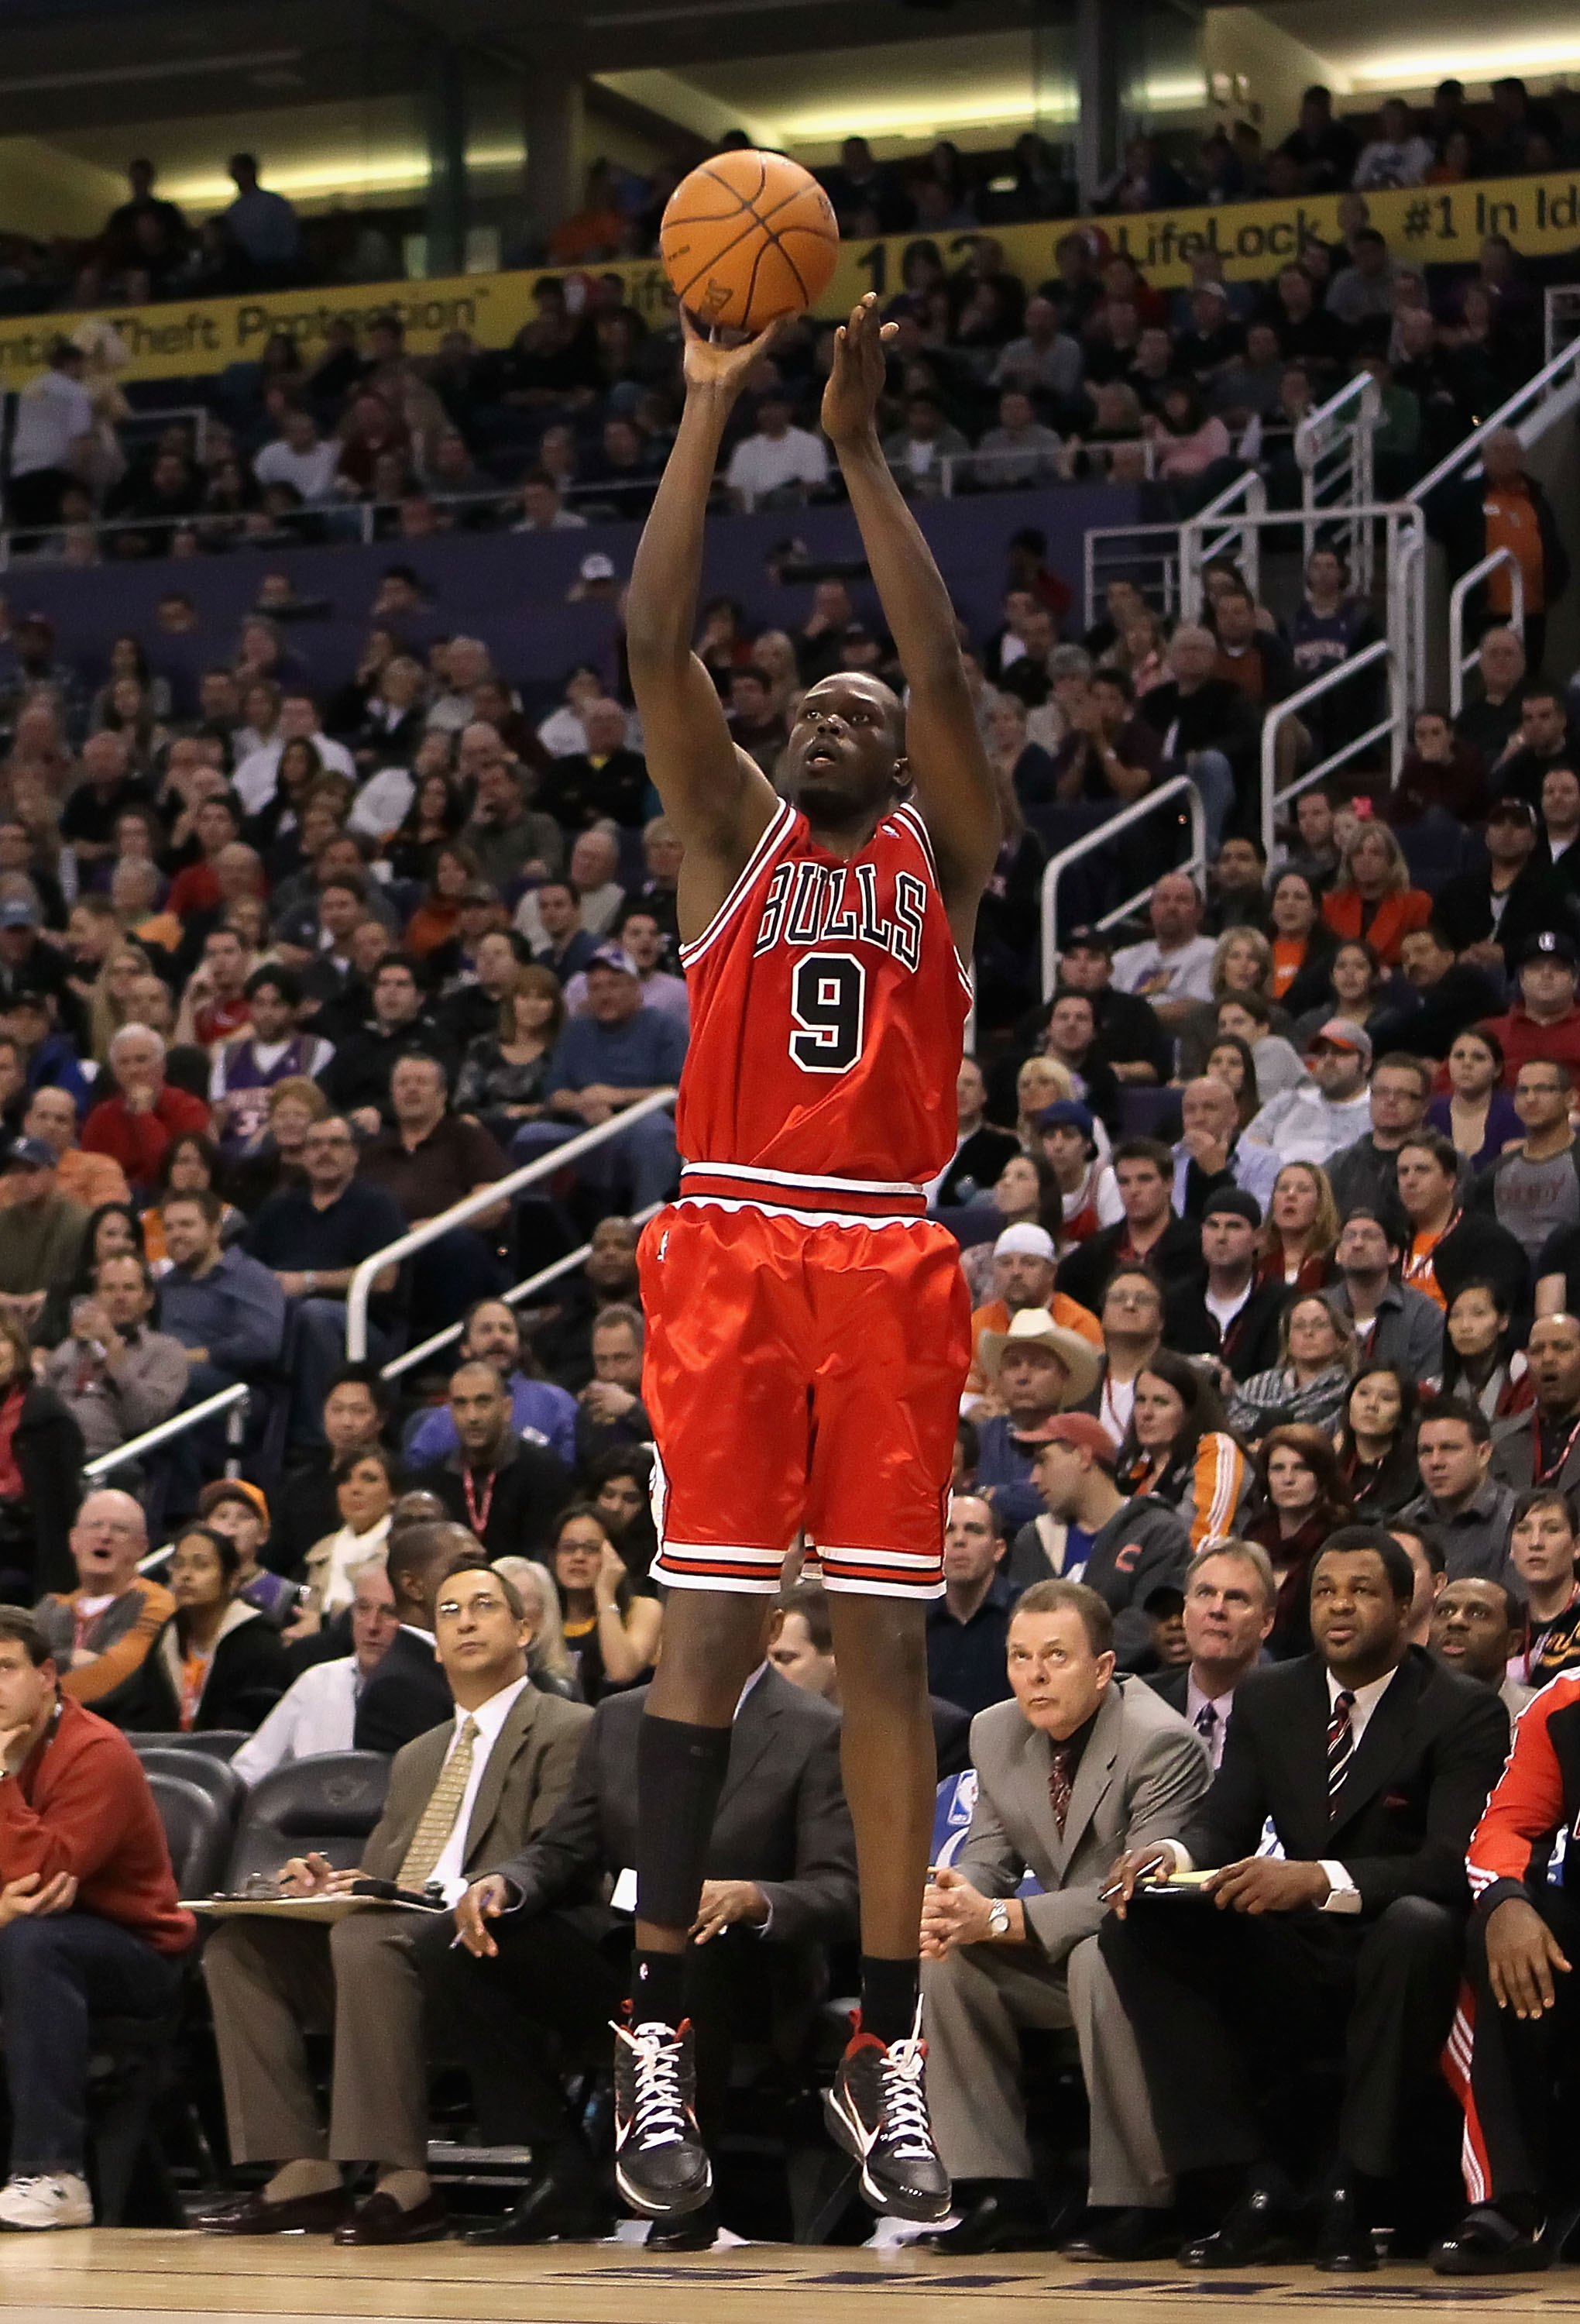 PHOENIX - JANUARY 22:  Luol Deng #9 of the Chicago Bulls puts up a three point shot against the Phoenix Suns during the NBA game at US Airways Center on January 22, 2010 in Phoenix, Arizona. The Bulls defeated the Suns 115-104.  NOTE TO USER: User express